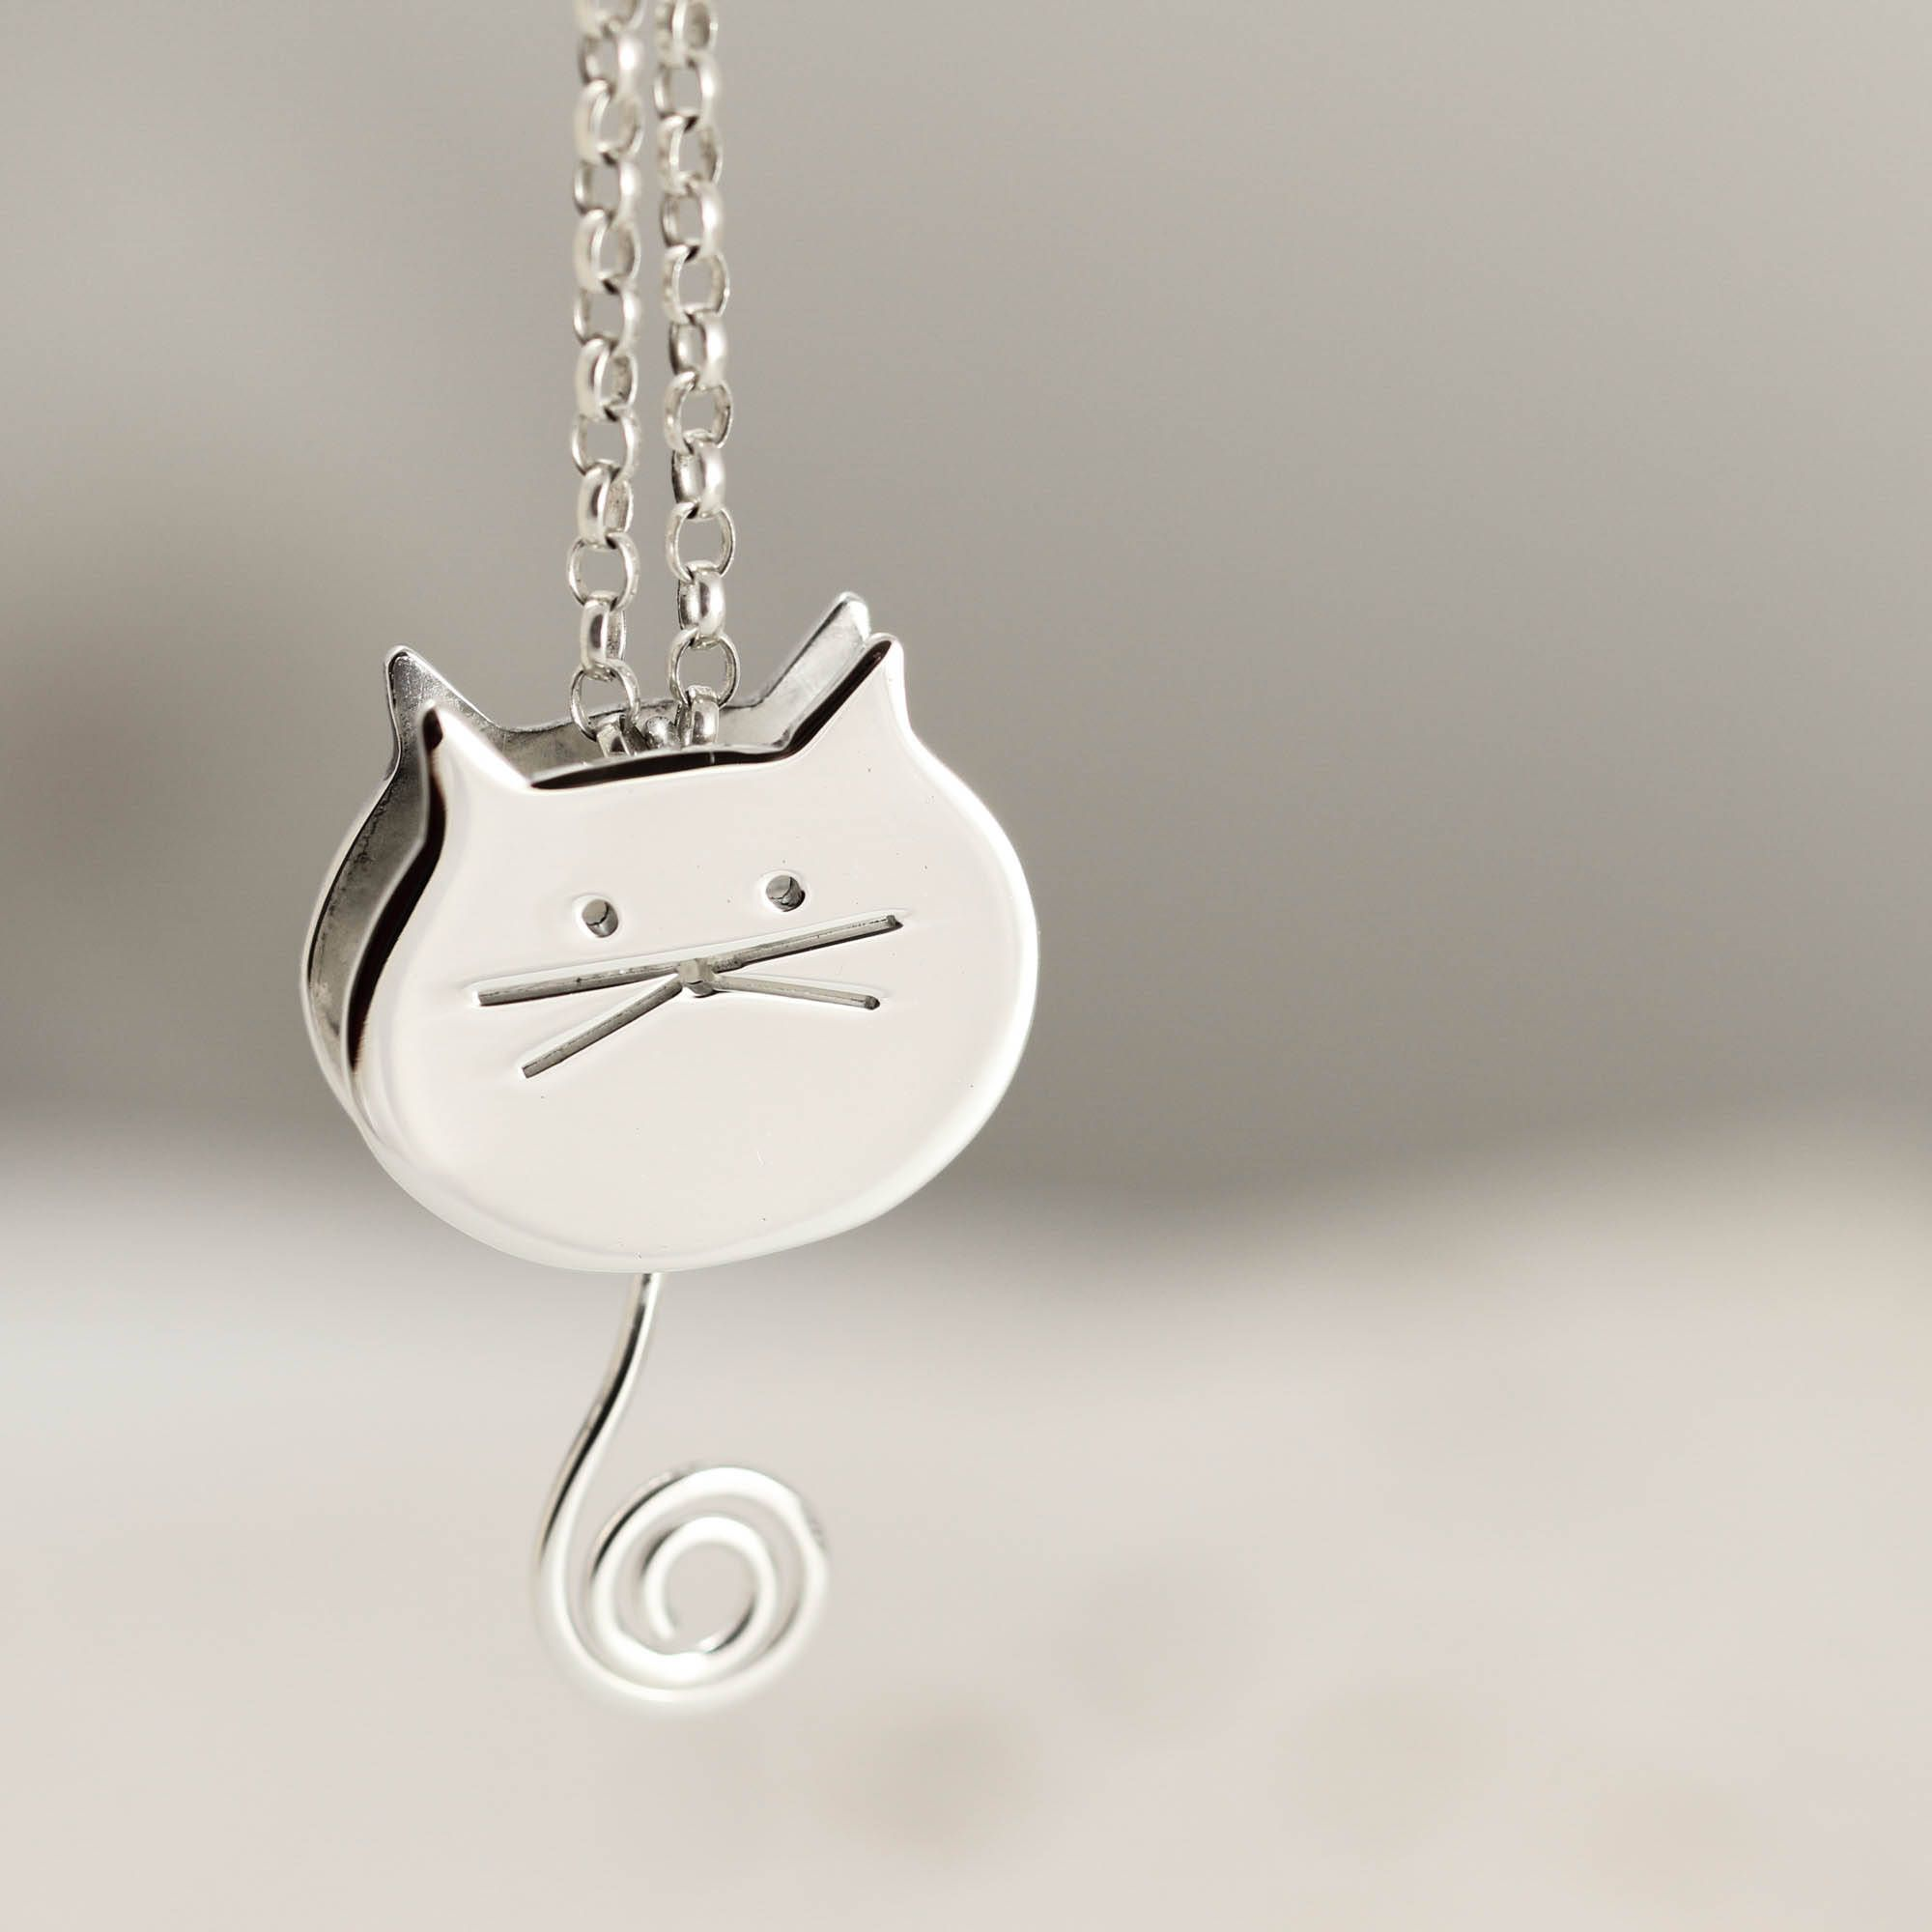 cat diamond qlt silver wallpaper jewelry hei white org sterling prod utsprokids necklace pendant wid spin hd jewellery with cttw black